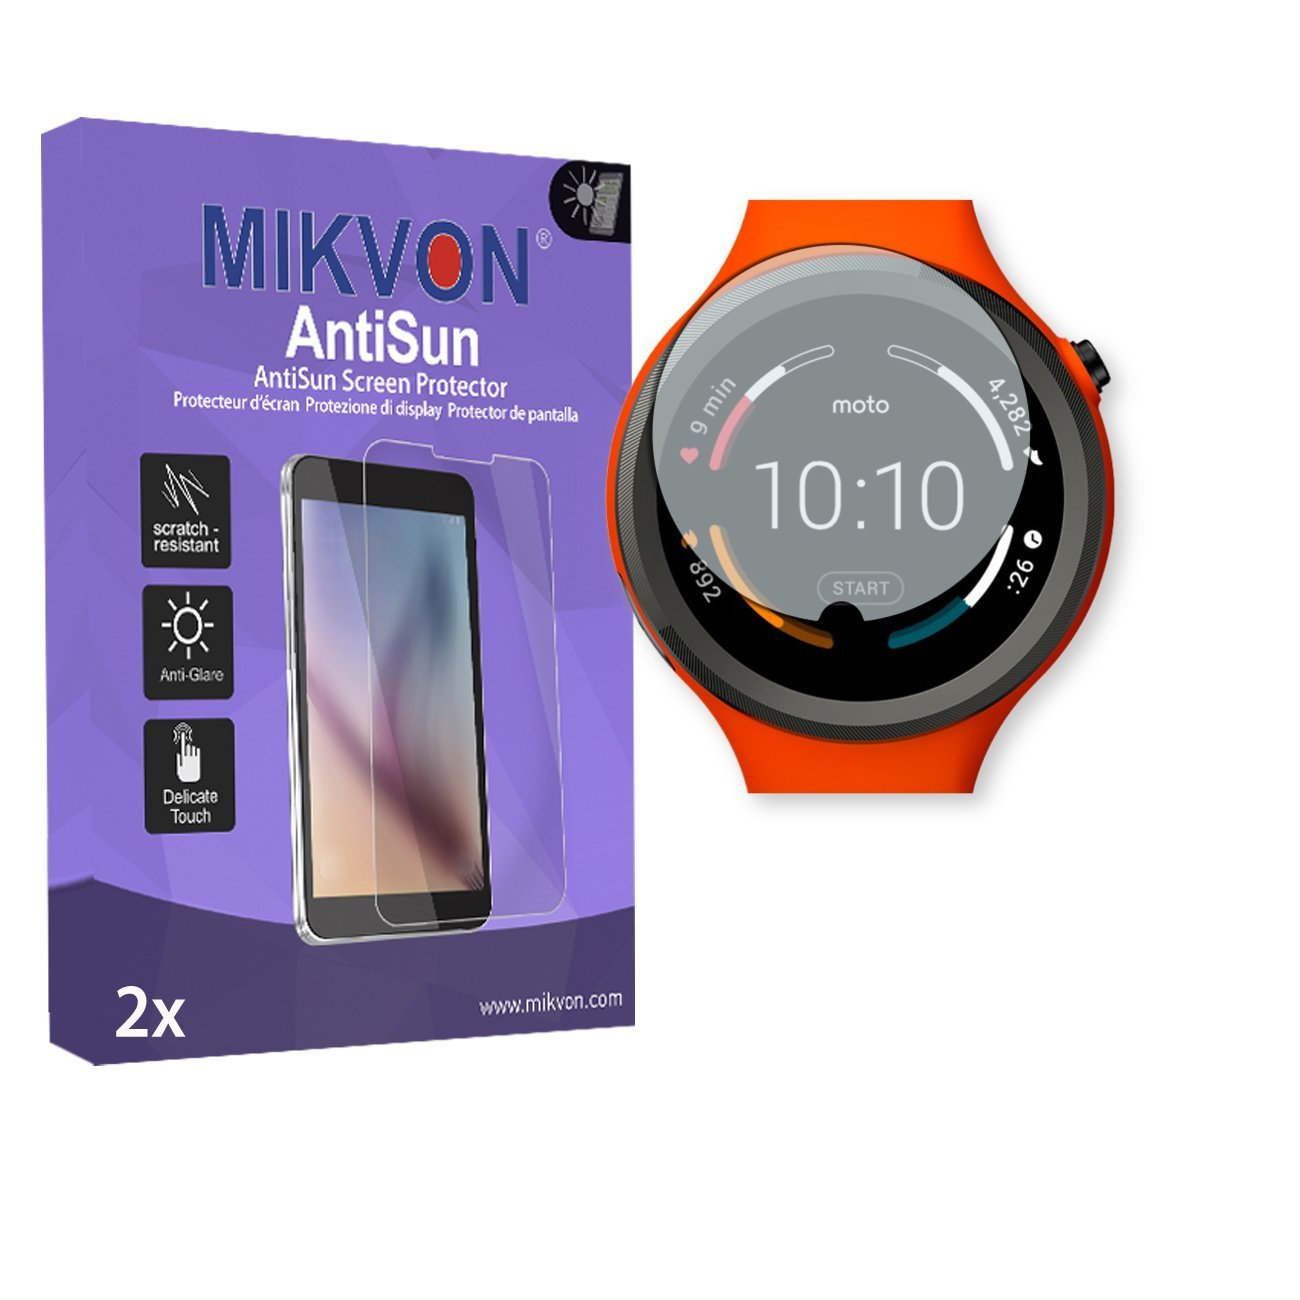 2x Mikvon AntiSun Screen Protector for Motorola Moto 360 Sport Smartwatch - Retail Package with accessories (intentionally smaller than the display due to its curved surface)